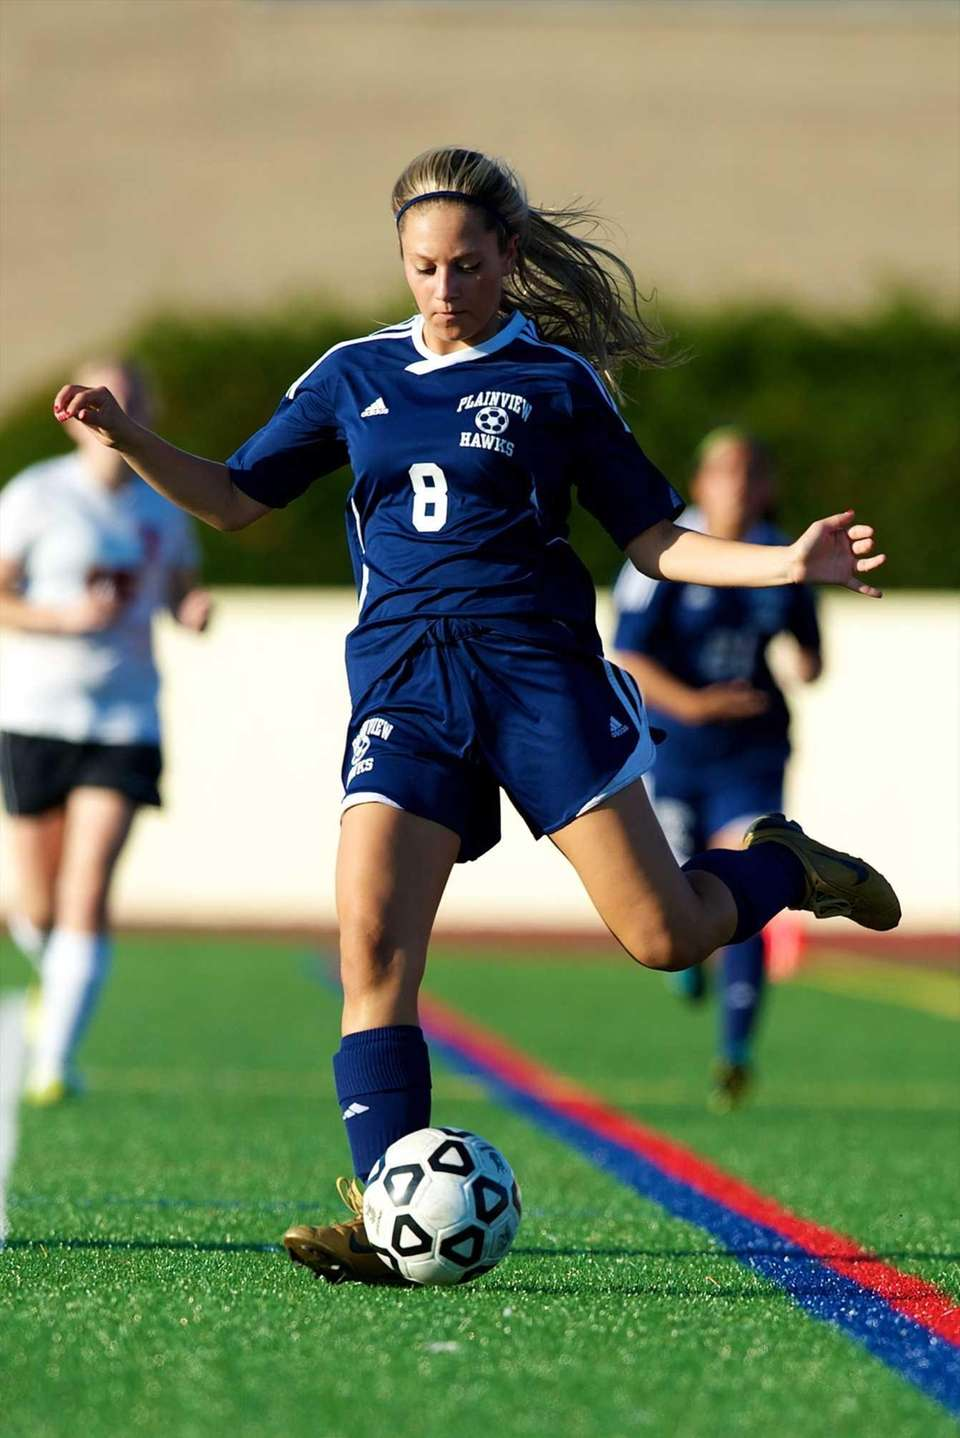 Plainview JFK's Joanna Karp (8) passes the ball